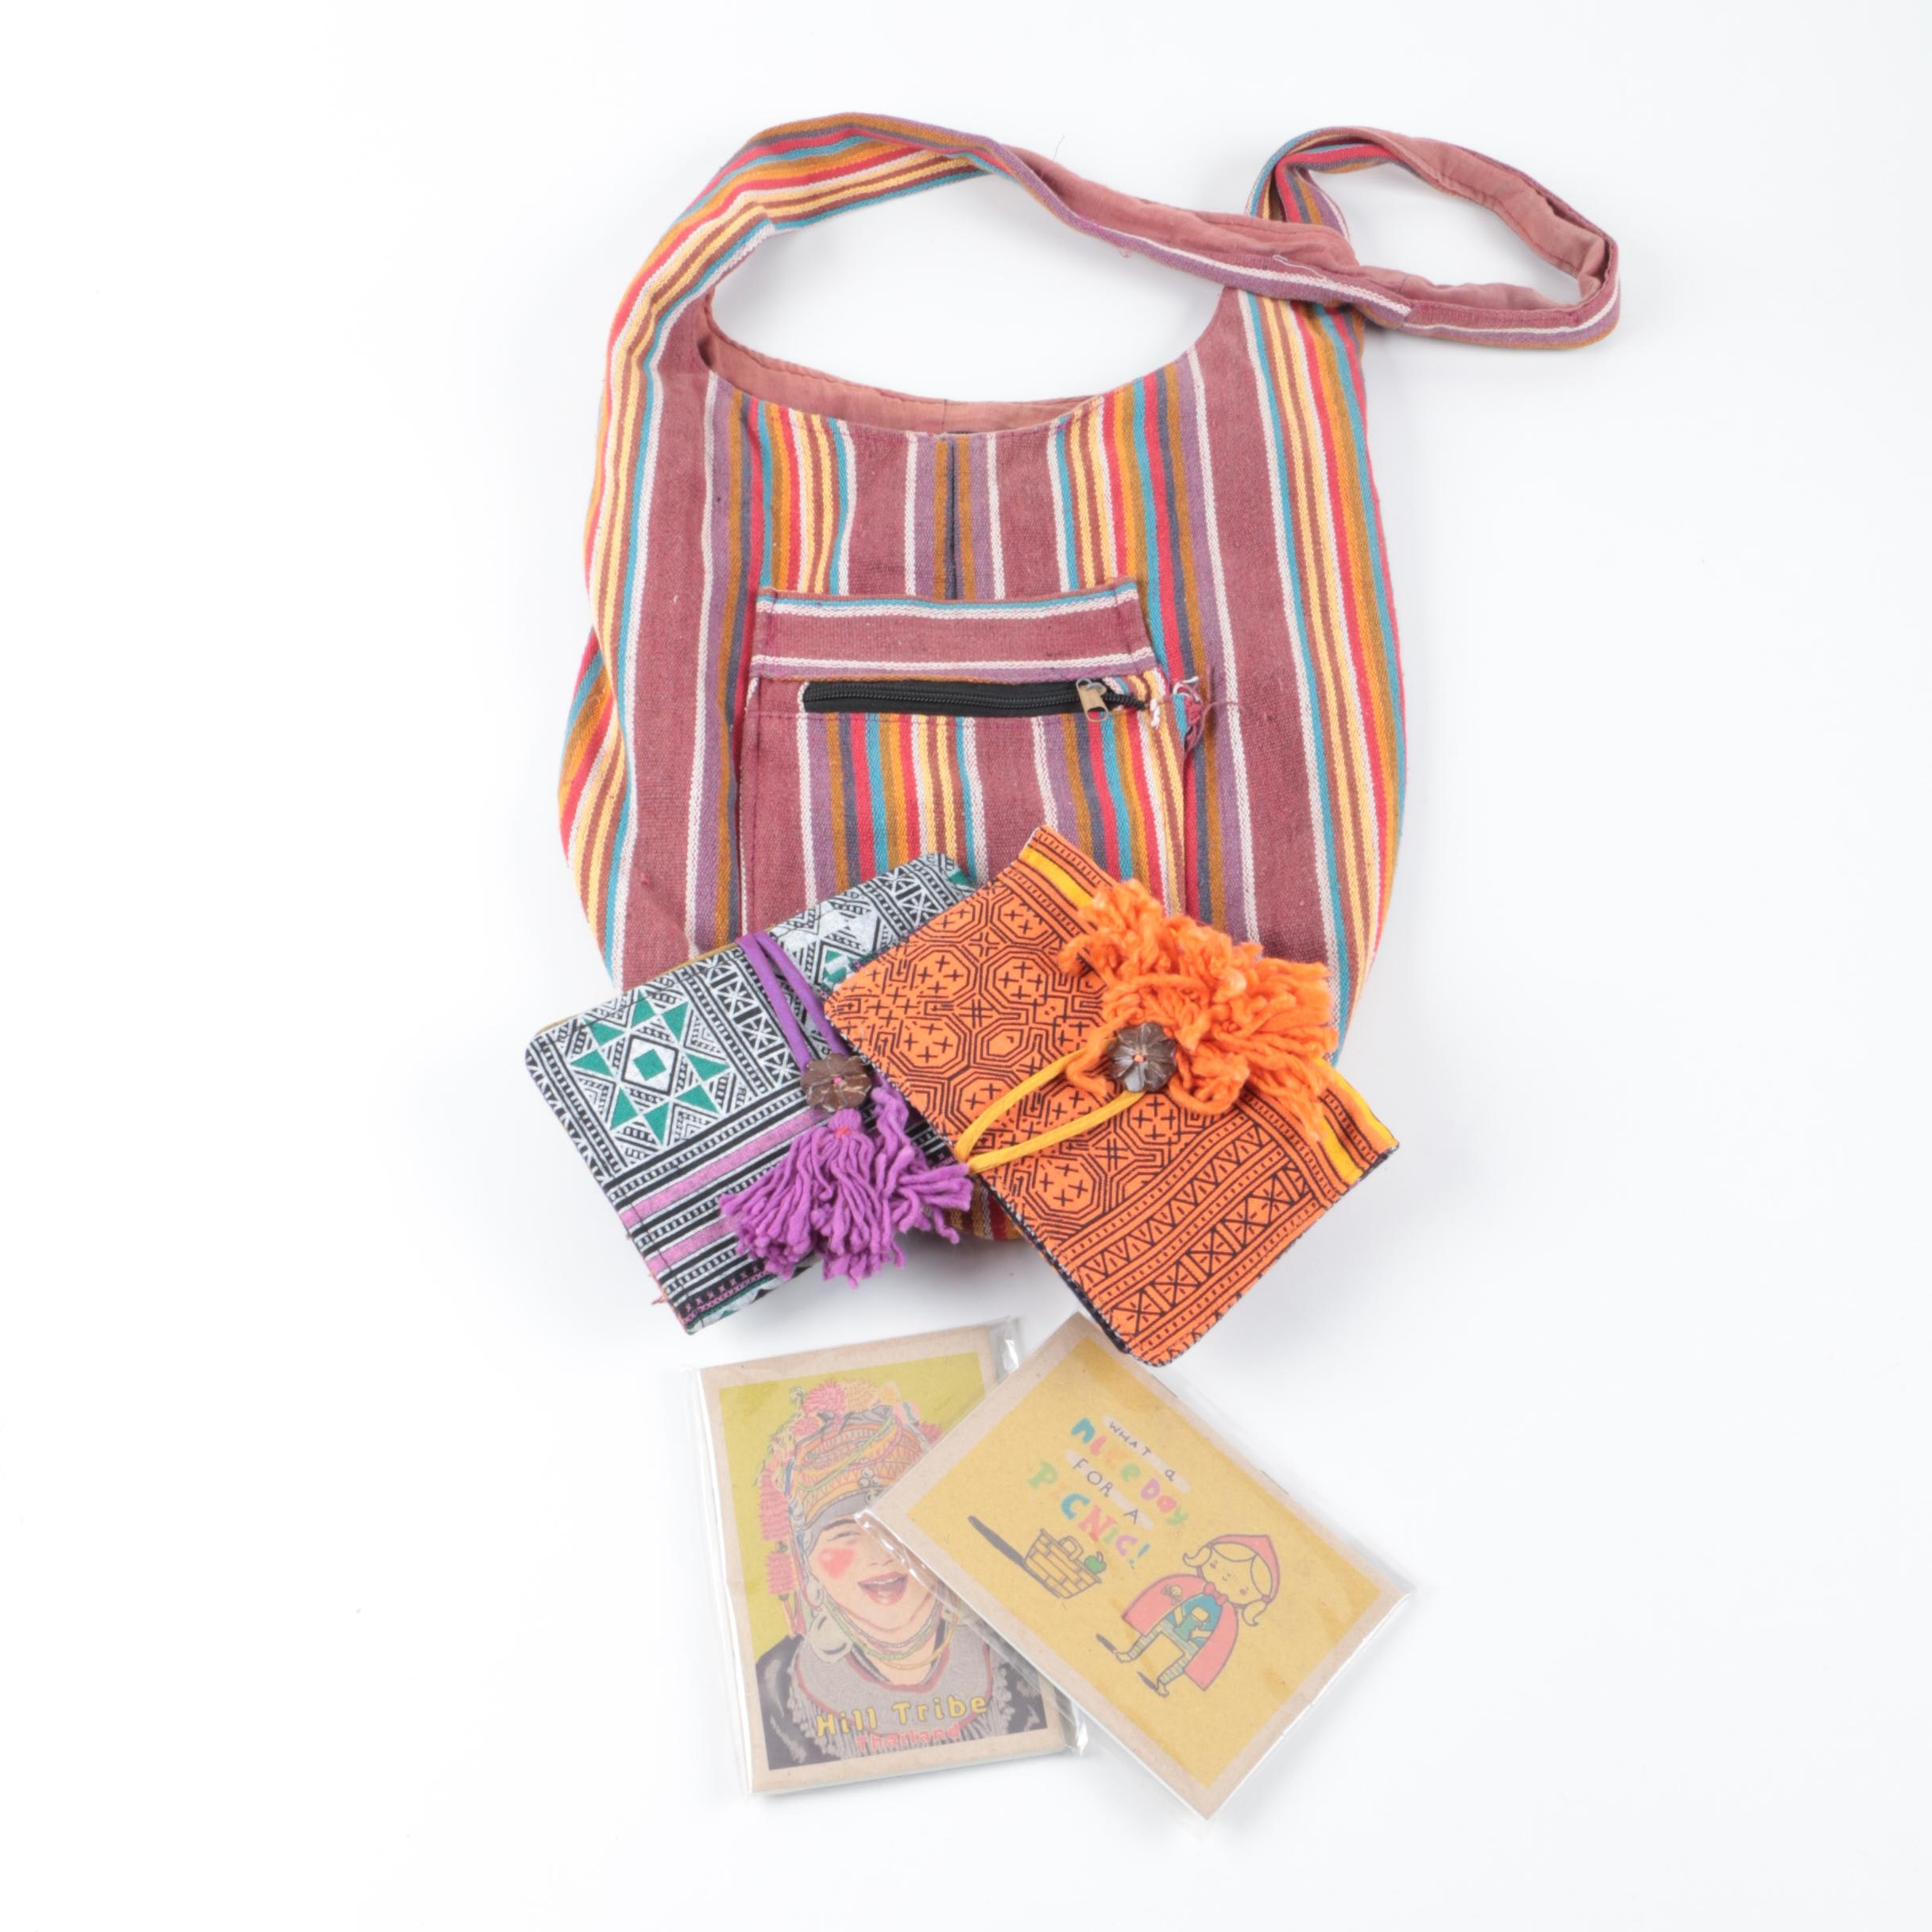 Woven Canvas Crossbody Bag and Journal Covers